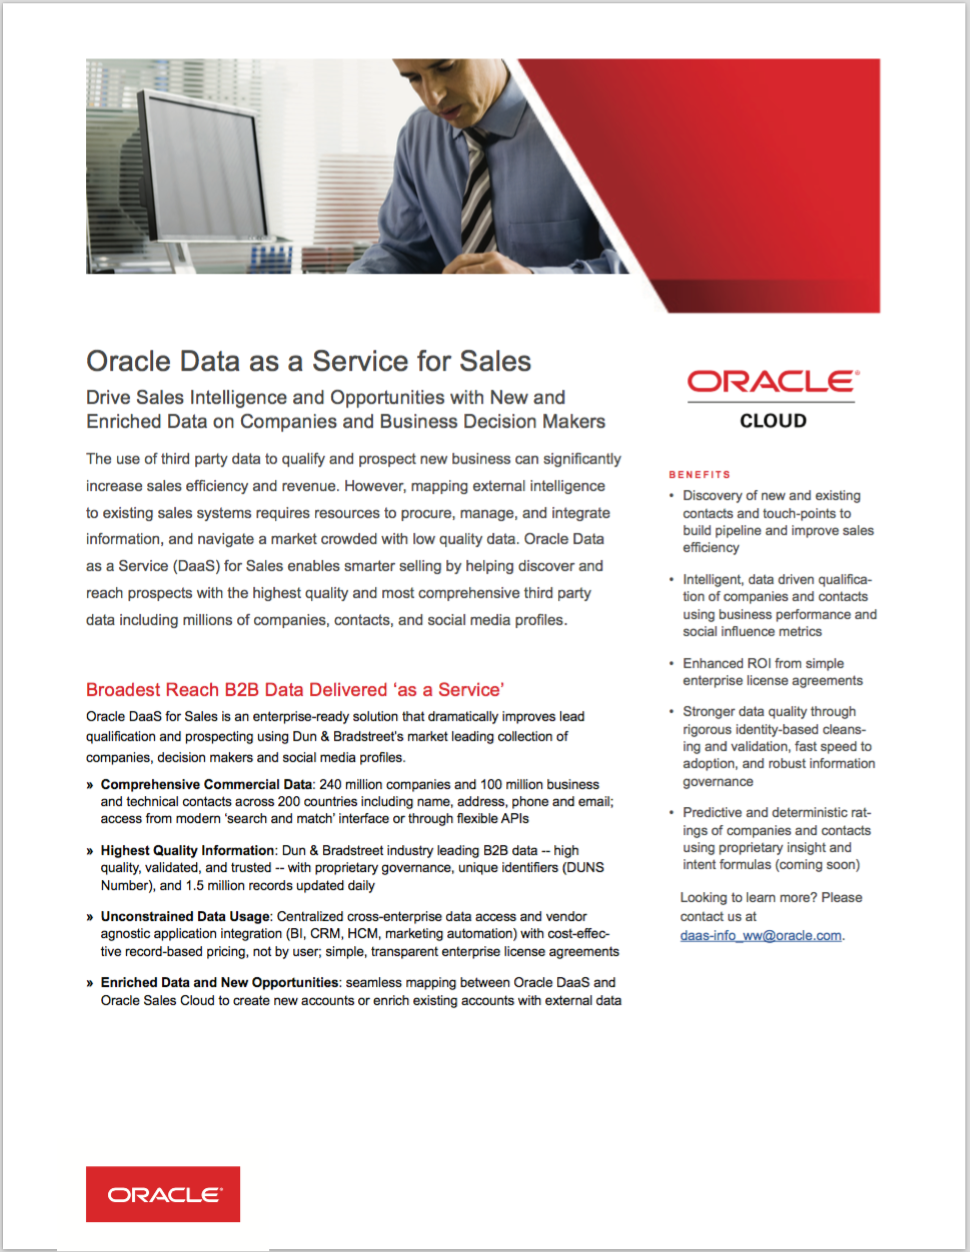 Oracle DaaS for Sales.png